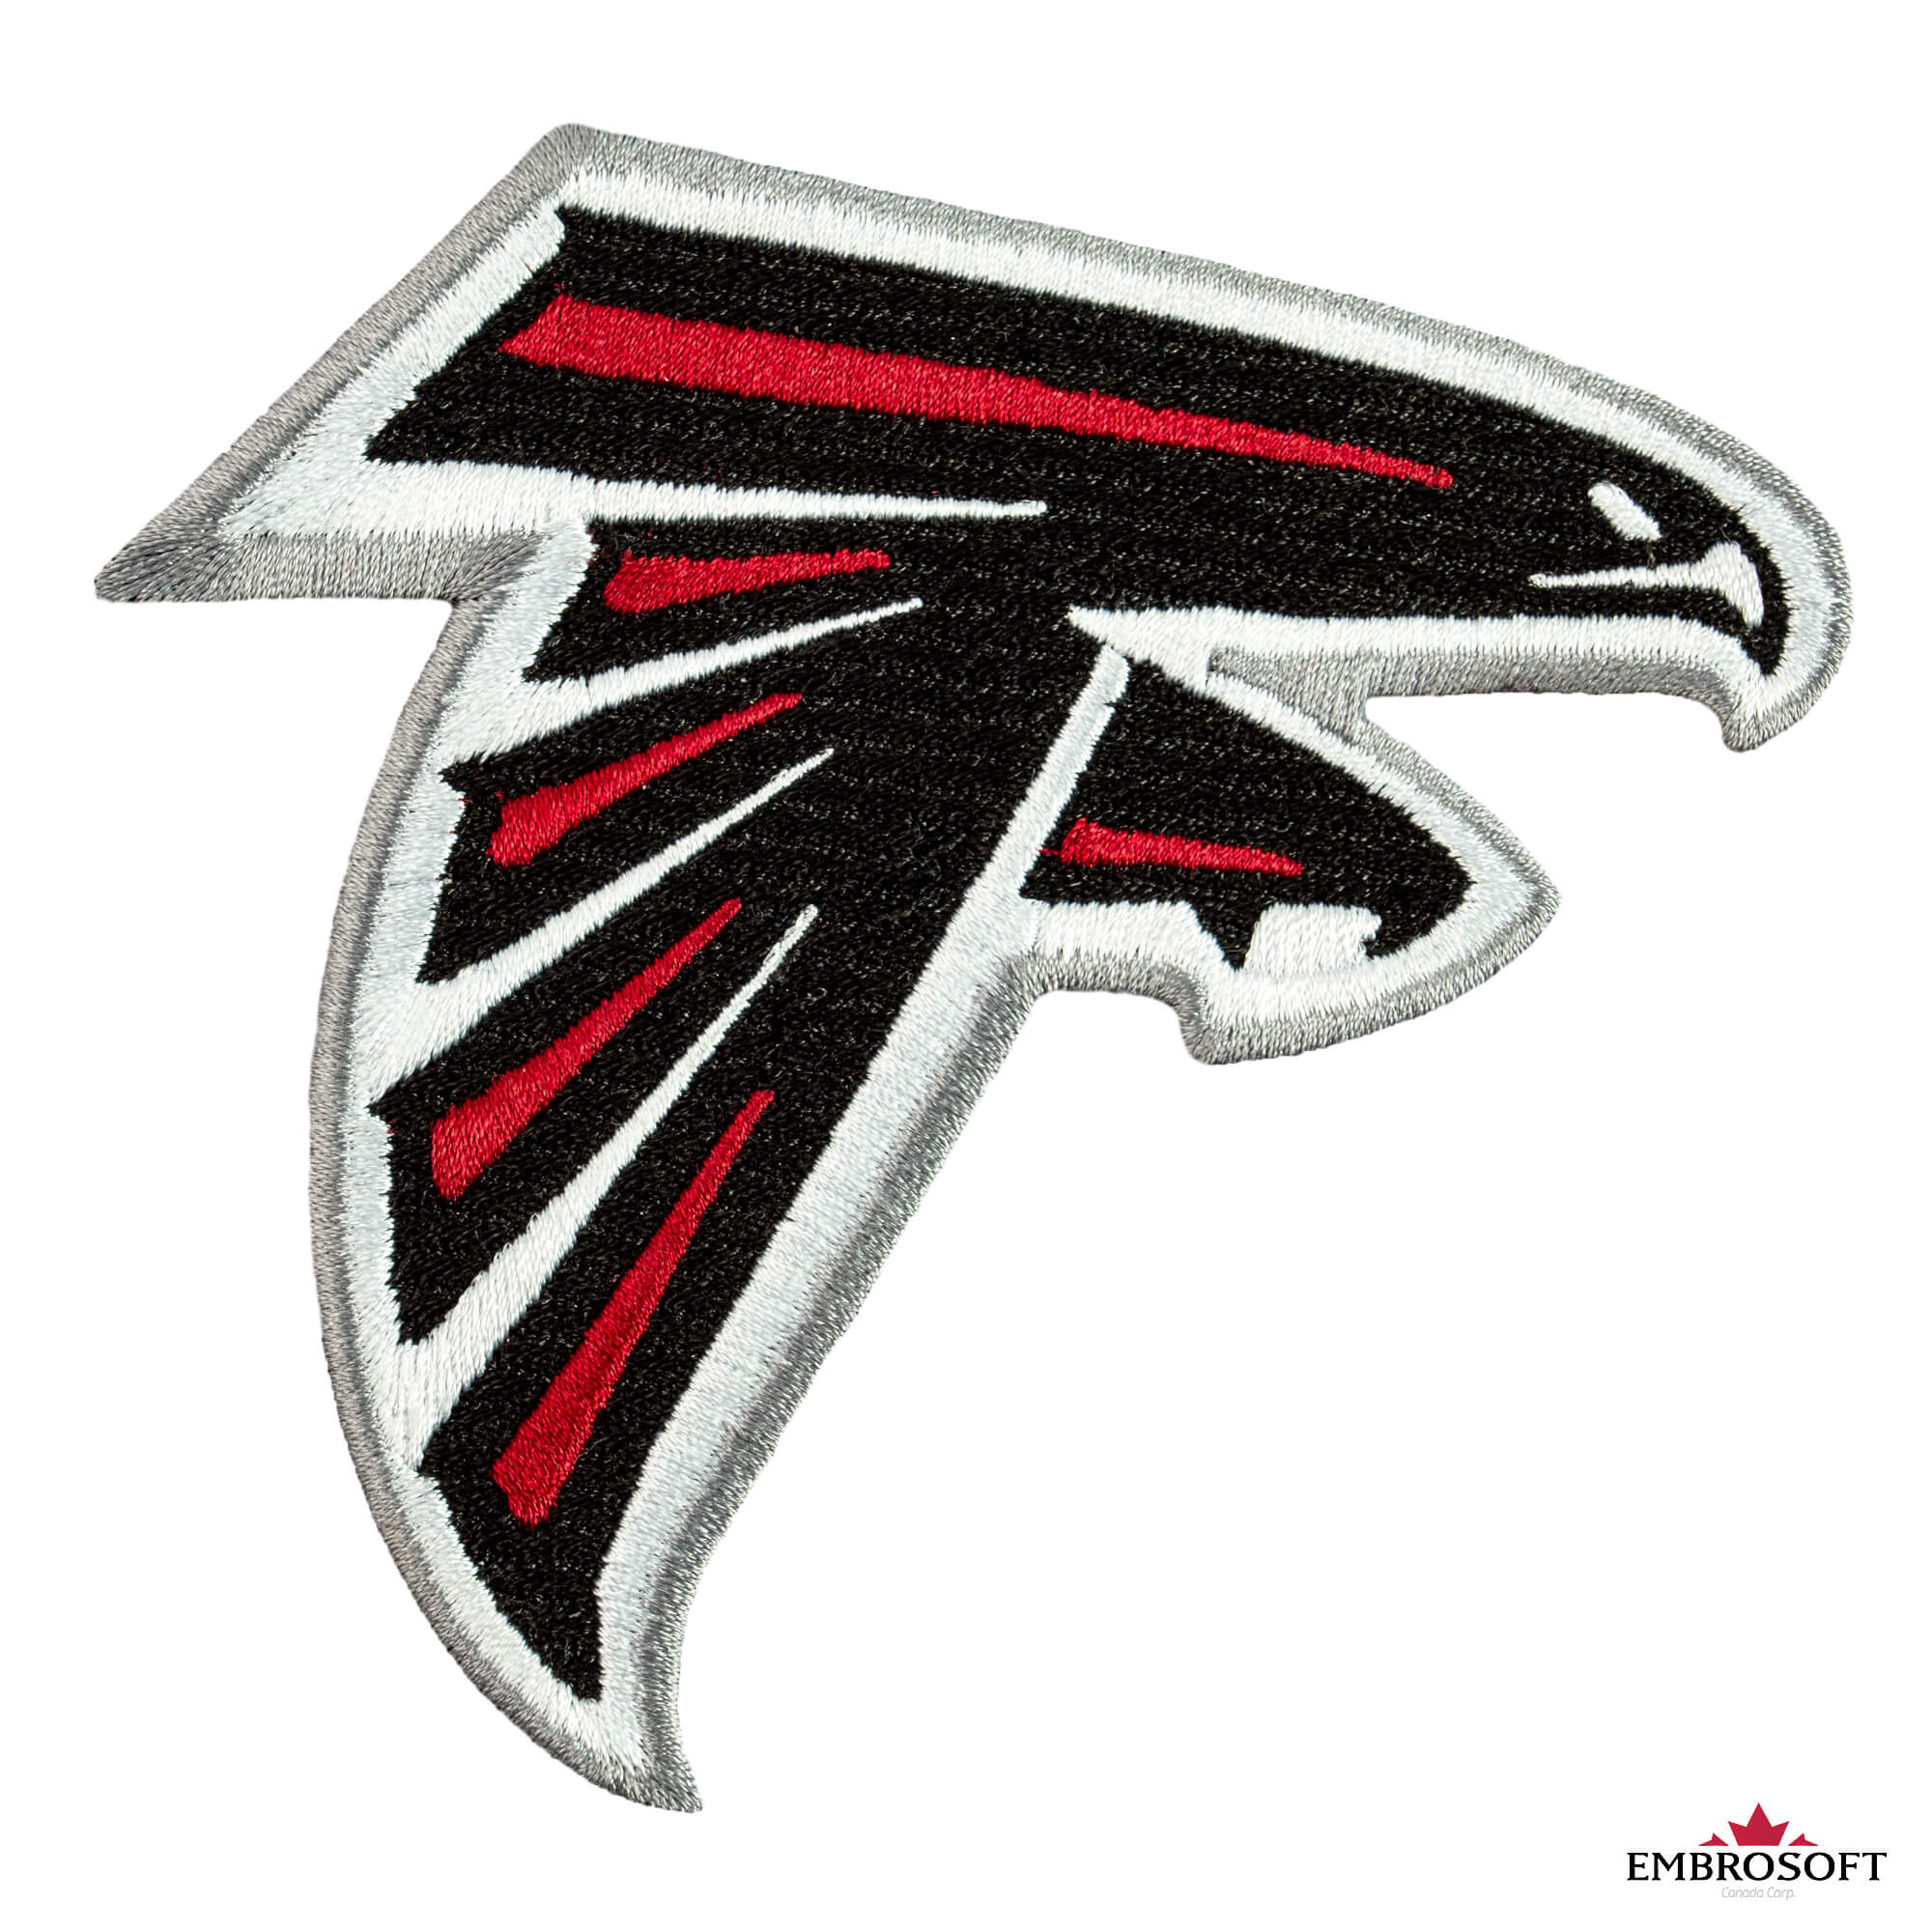 Atlanta Falcons Patch Nfl Sports Team Logo Size 3 7 X 3 5 Inches Embrosoft